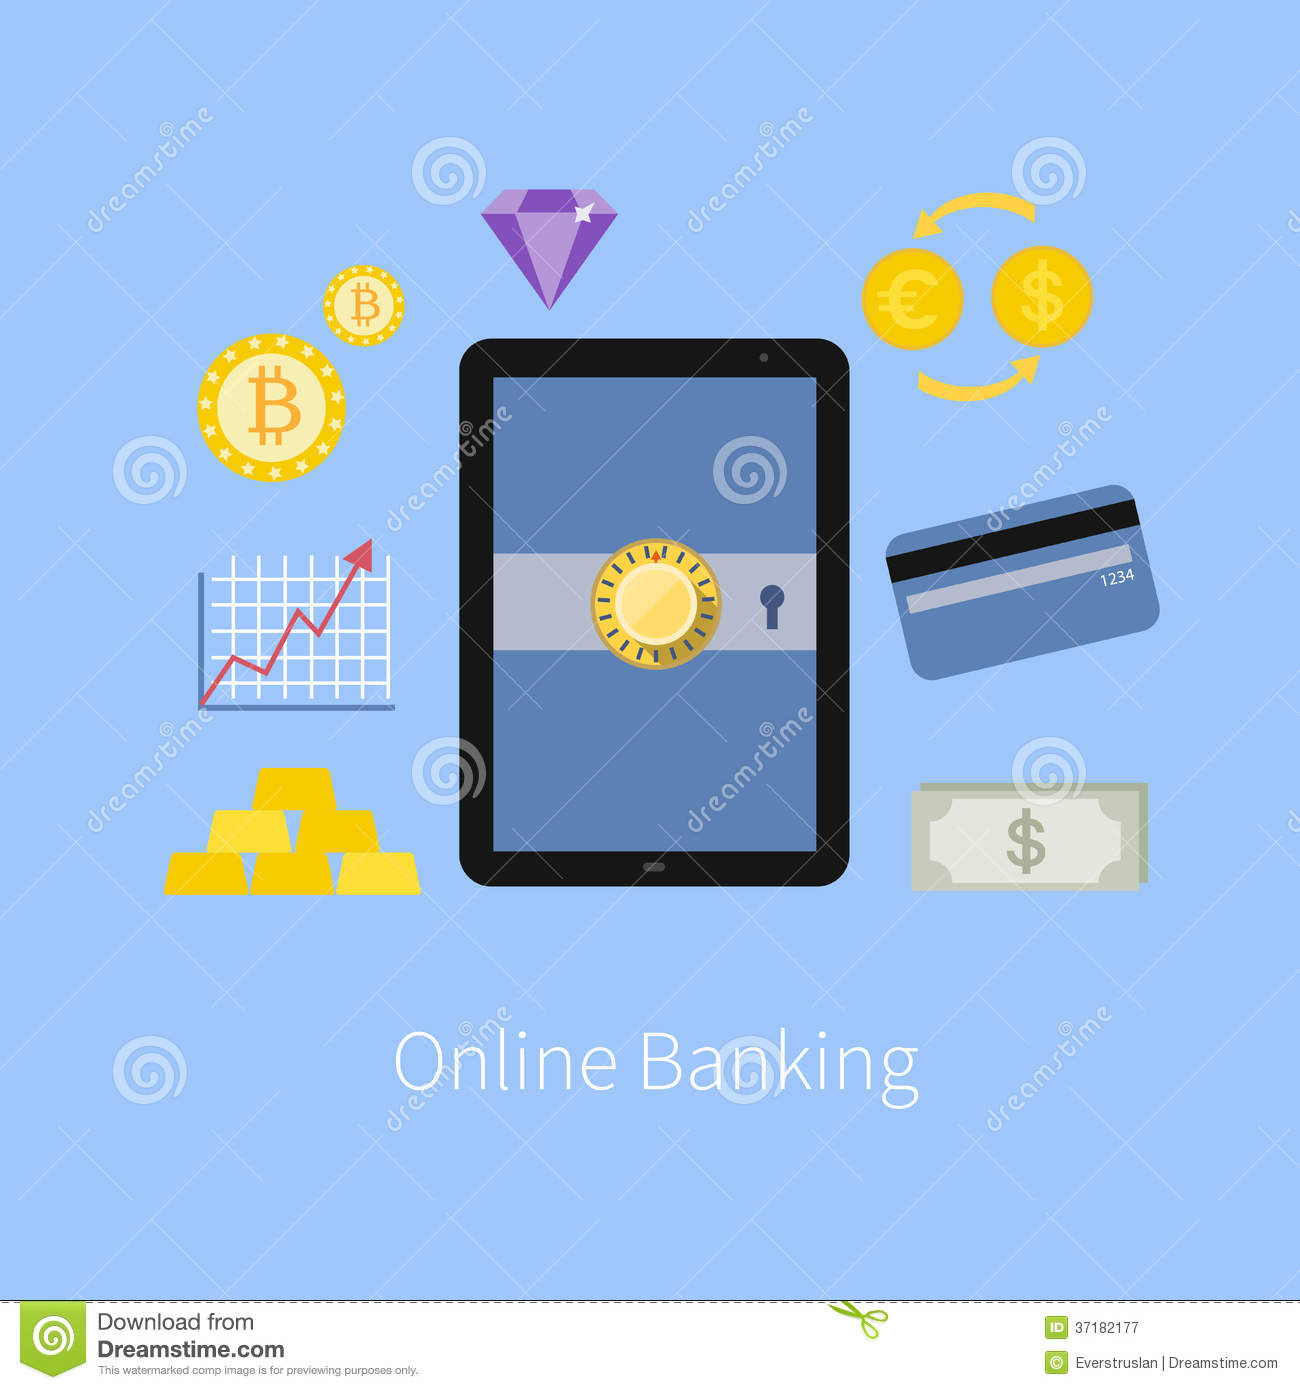 thesis on online banking services